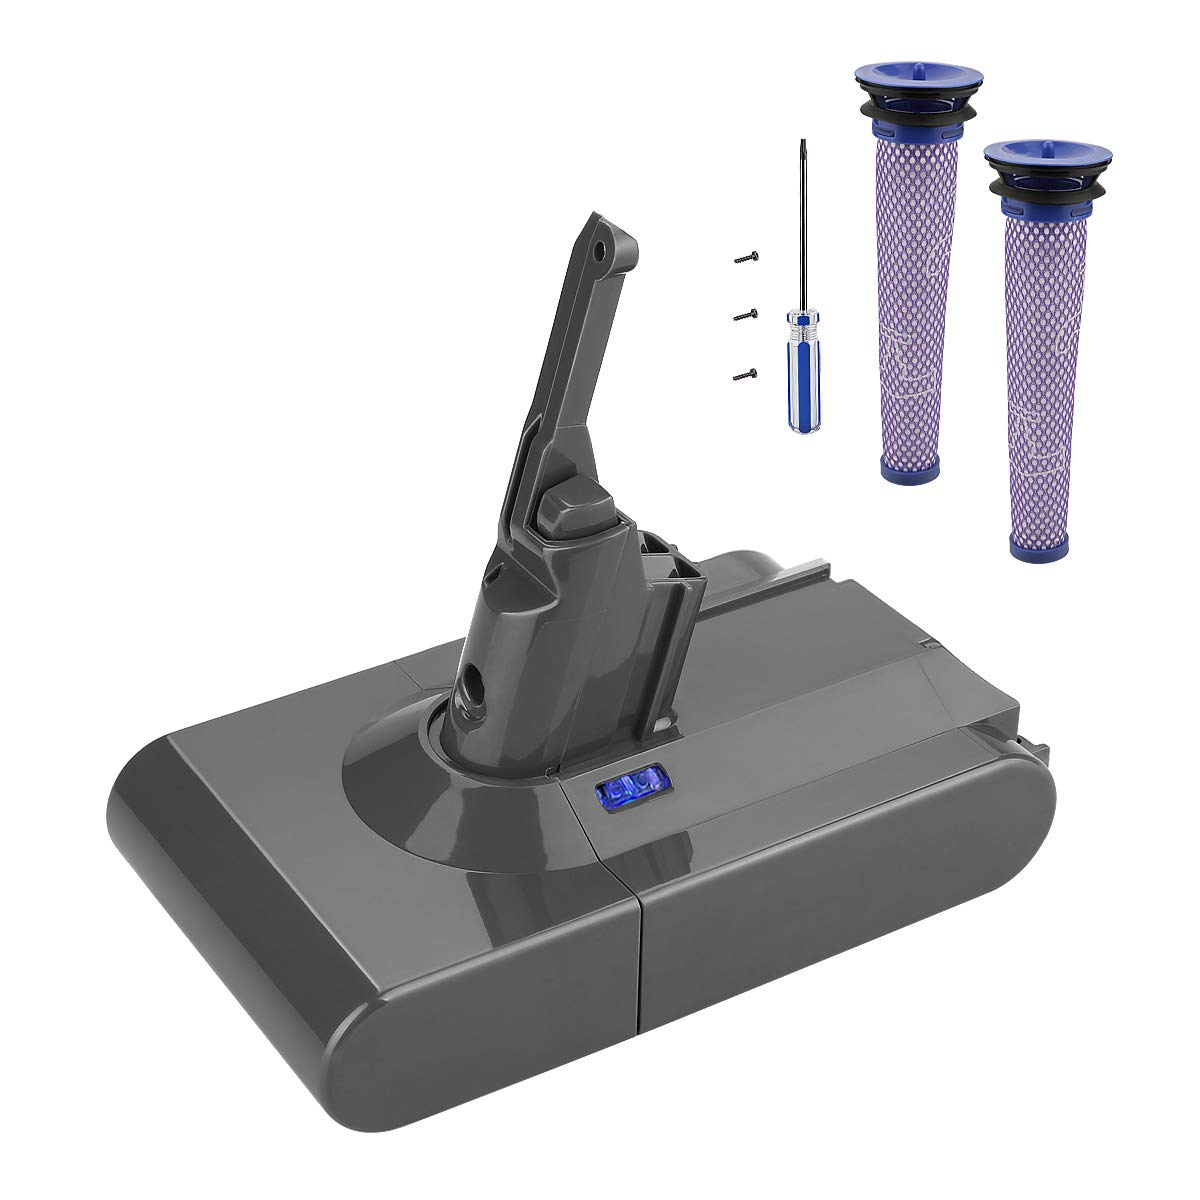 Powilling 21.6V 3.5Ah Lithium-Ion Battery Replacements for Dyson V8 Cordless Handheld Vacuum Dyson V8 Absolute(with Dyson Vacuum Parts, HEPA Post&Pre-Filter V8 Kit, Dyson V8 Animal Replace Filter Kit) by Powilling